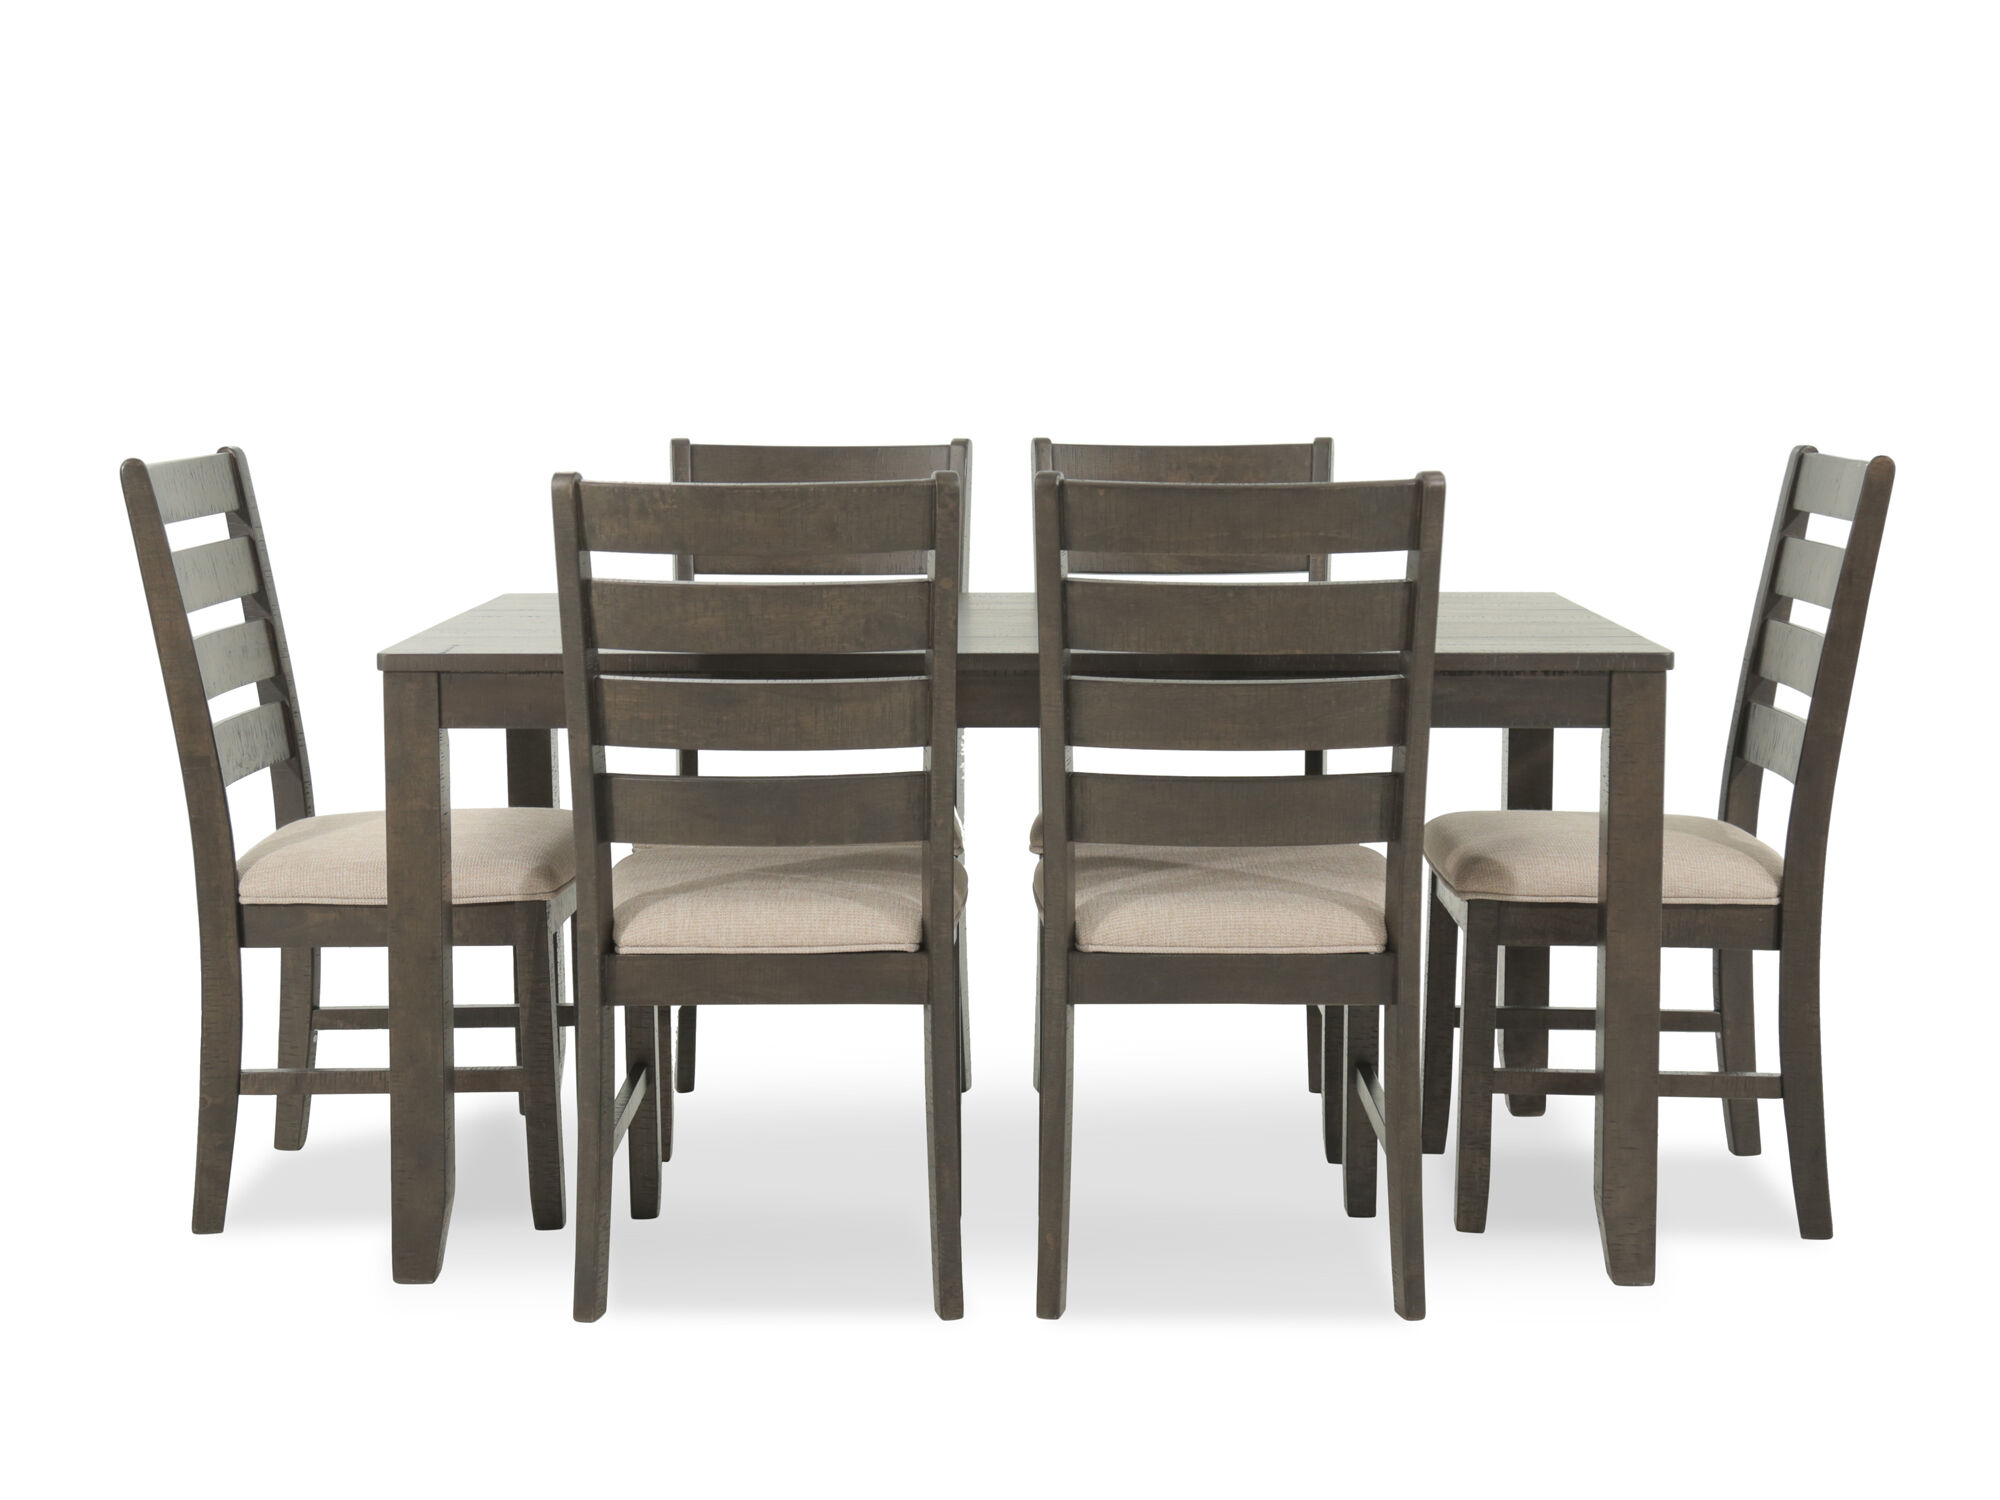 Navy And Gold Dining Room, Seven Piece Contemporary 60 Dining Set In Brown Mathis Brothers Furniture